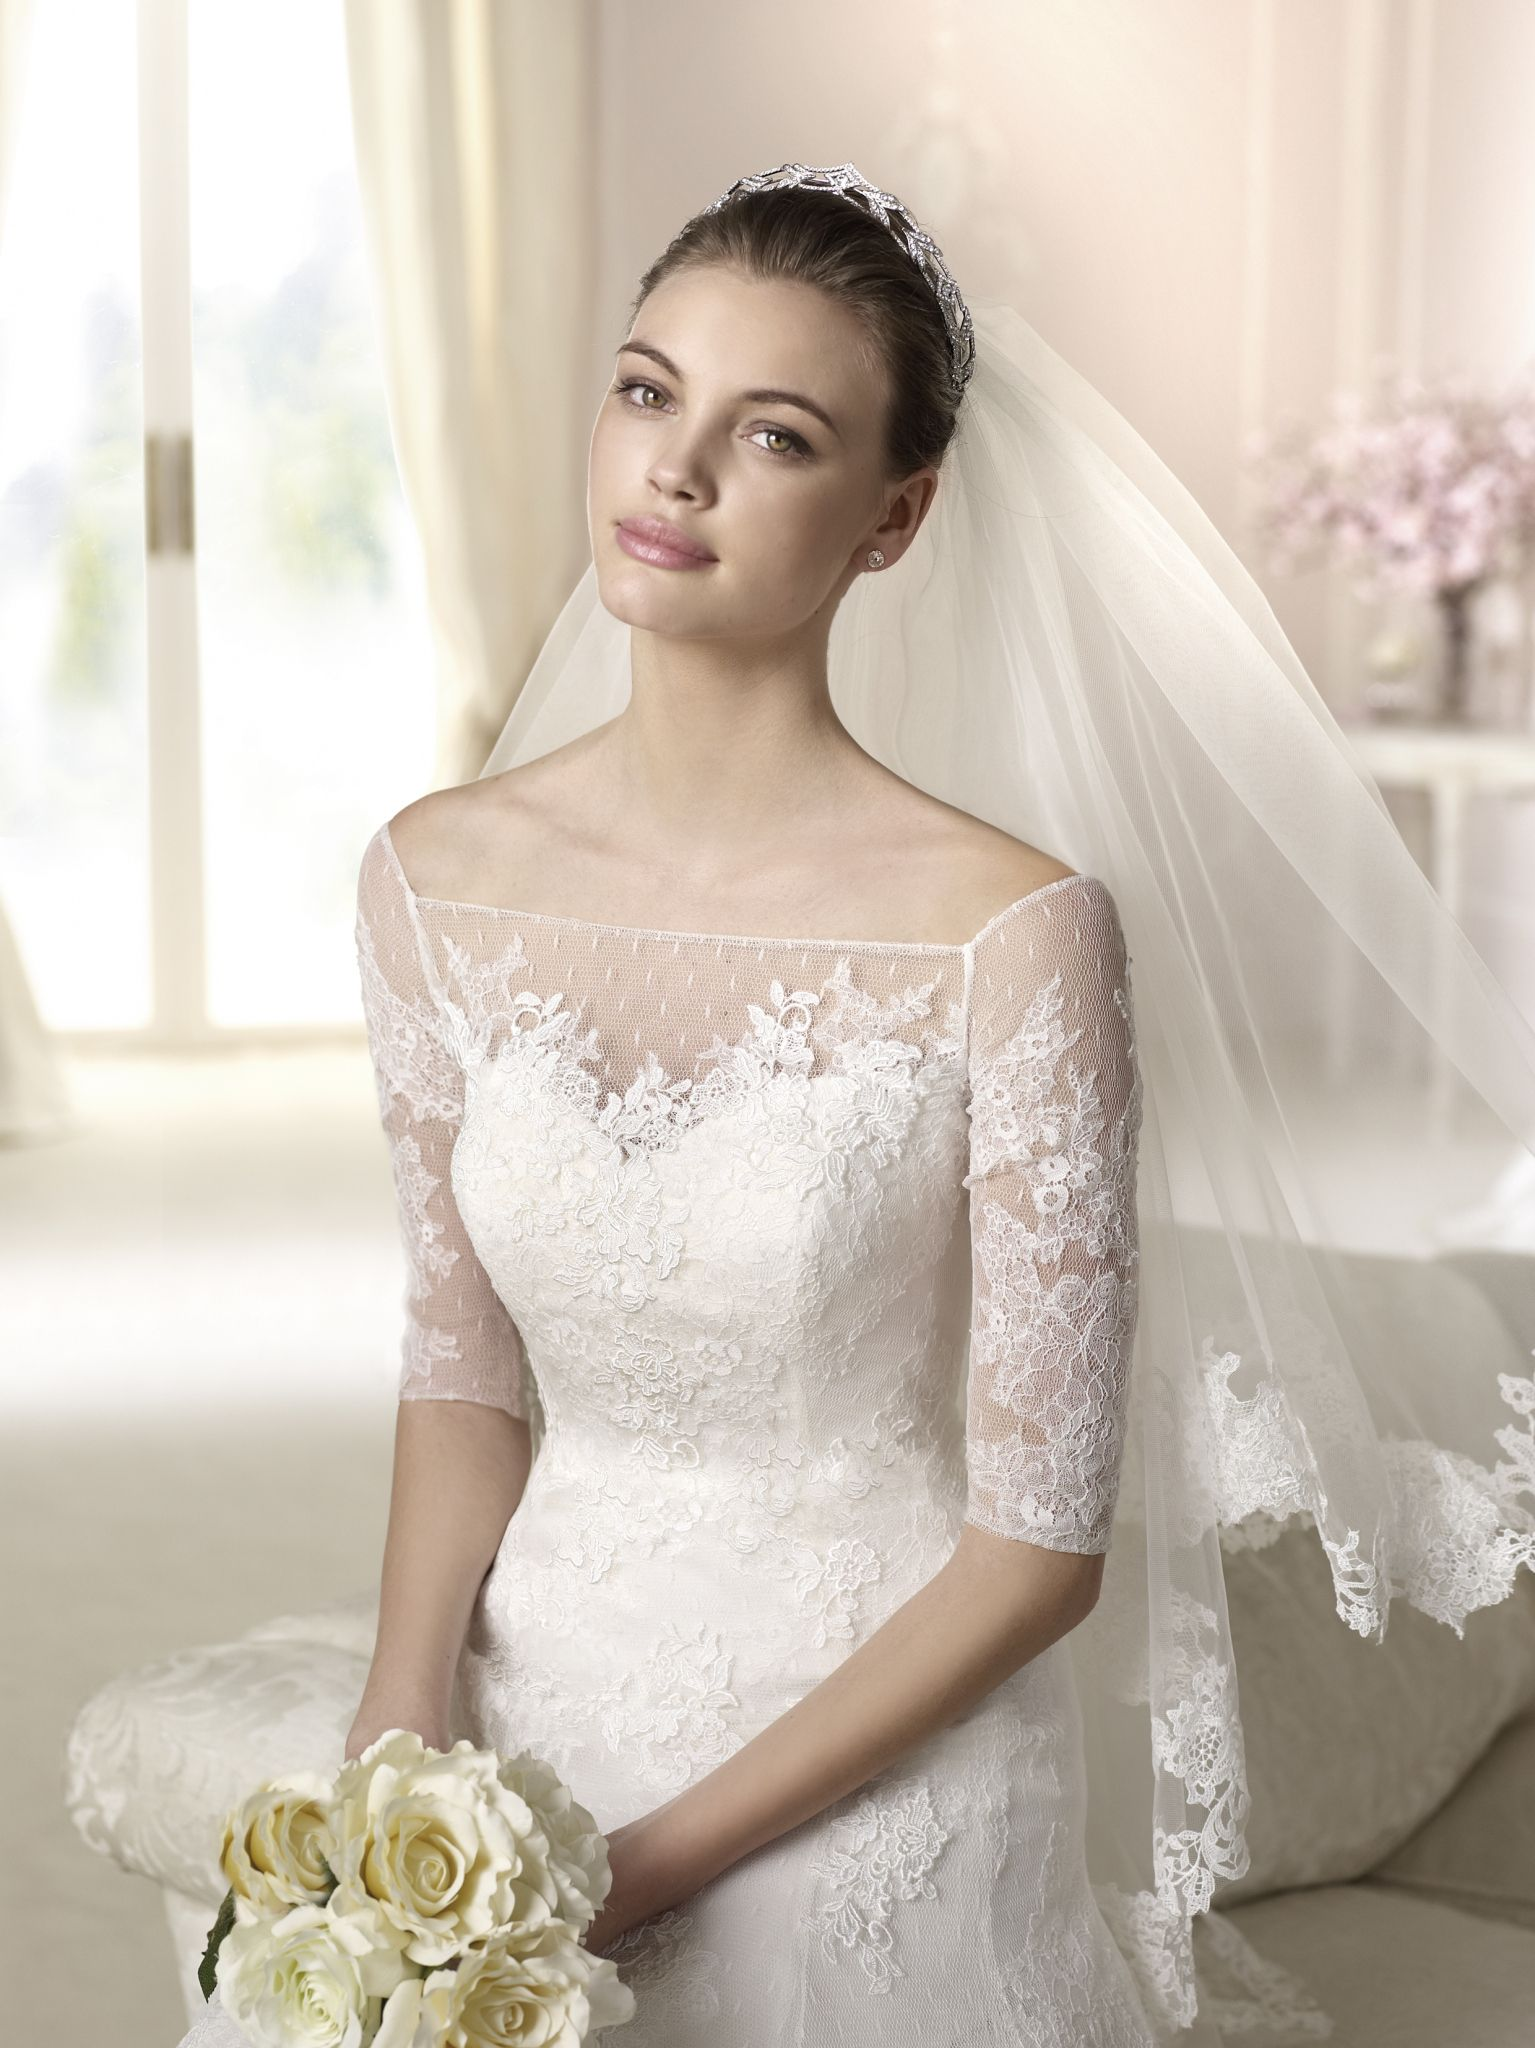 Where can i rent a wedding dress  Wedding Dresses Rental Prices  Wedding Dresses for Fall Check more